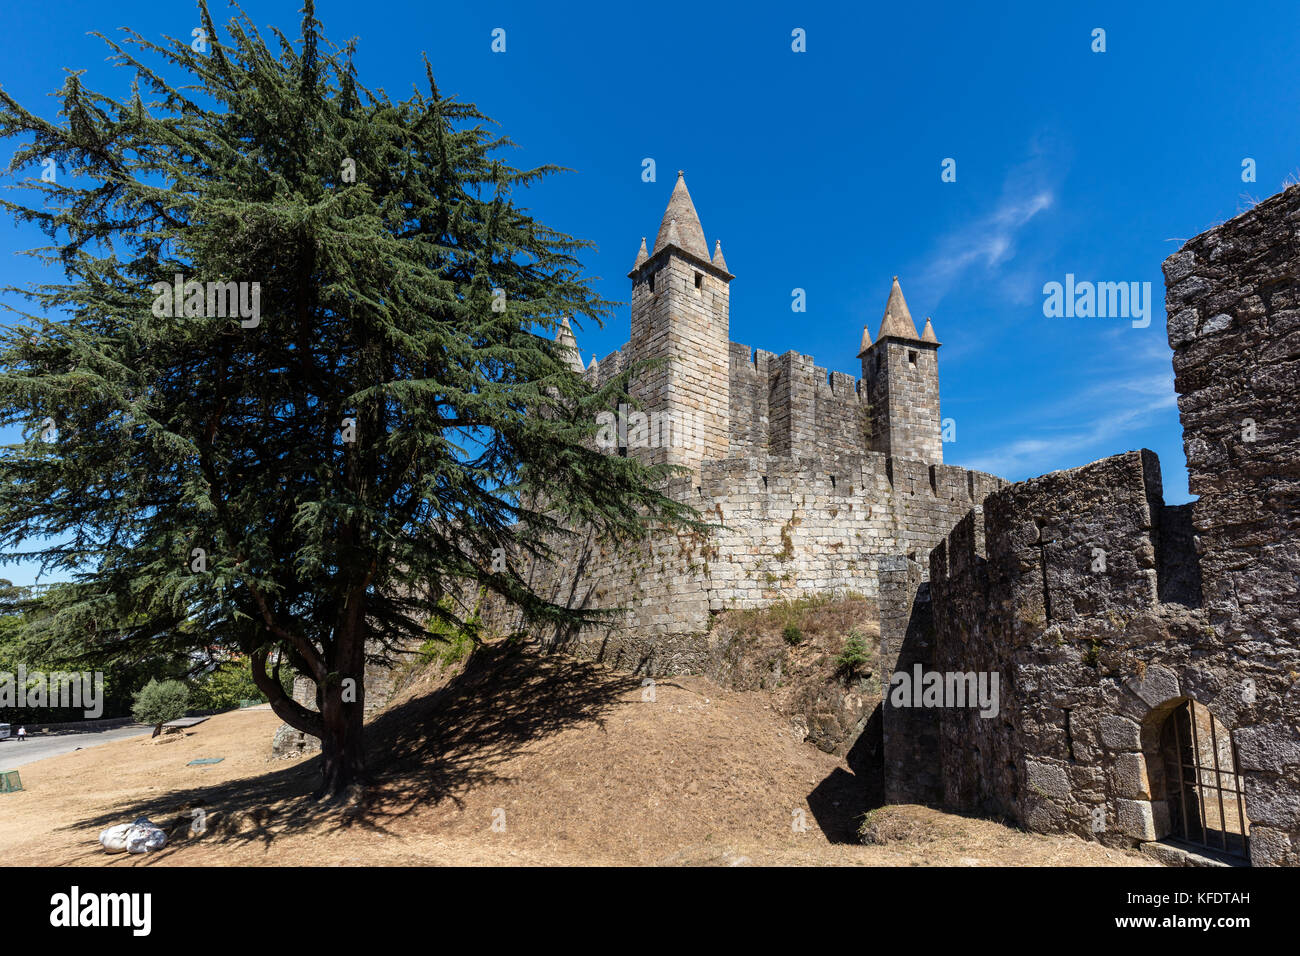 Santa Maria da Feira Castle in Portugal, a testament to the military architecture of the Middle Ages and an important - Stock Image